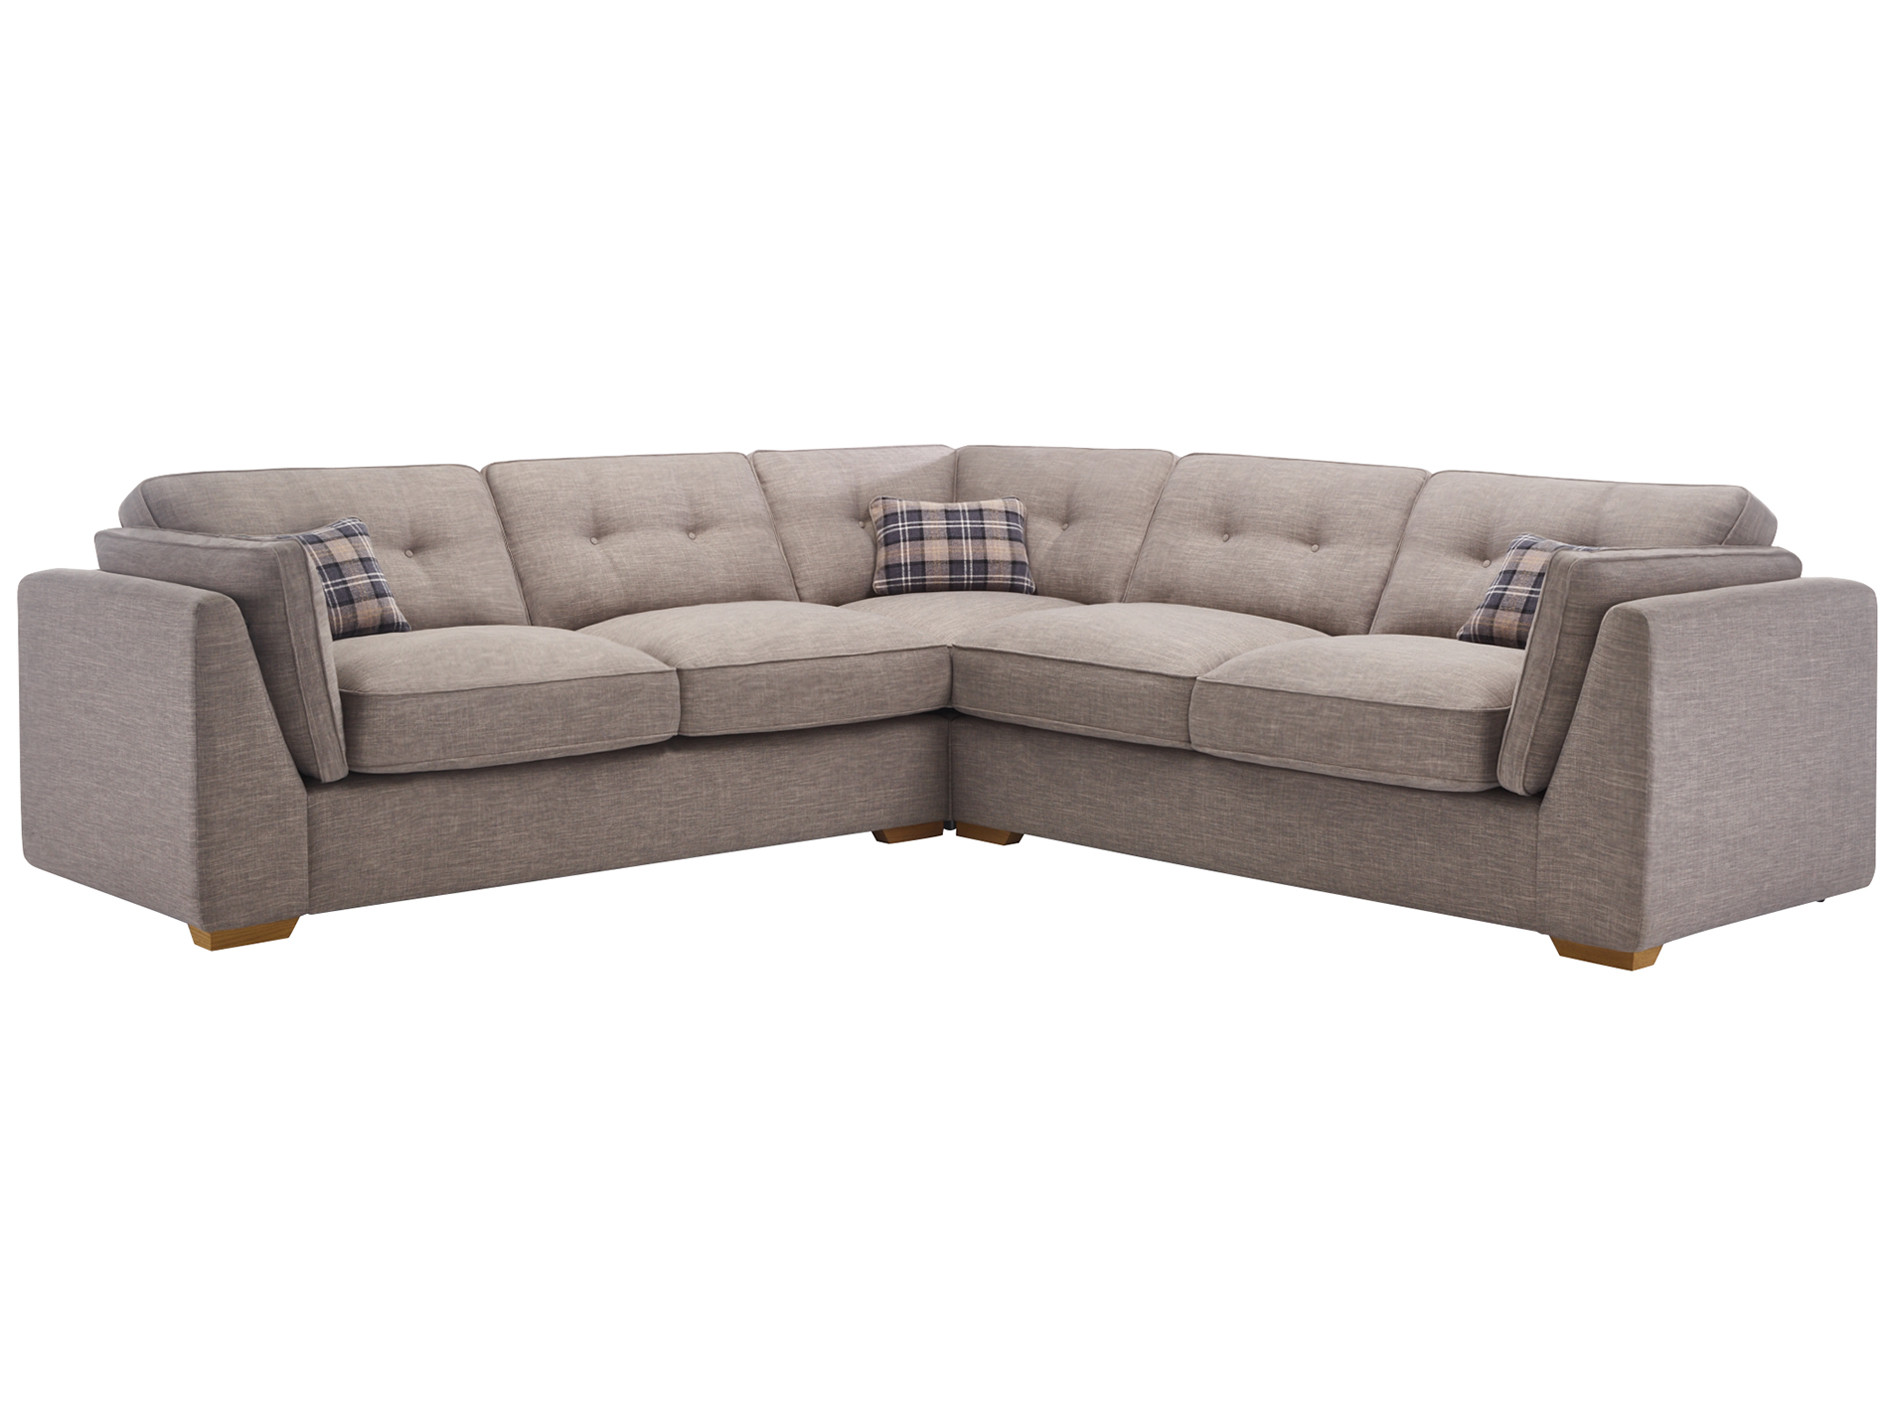 California 4 seater high back corner sofa civic smoke for Corner loveseats